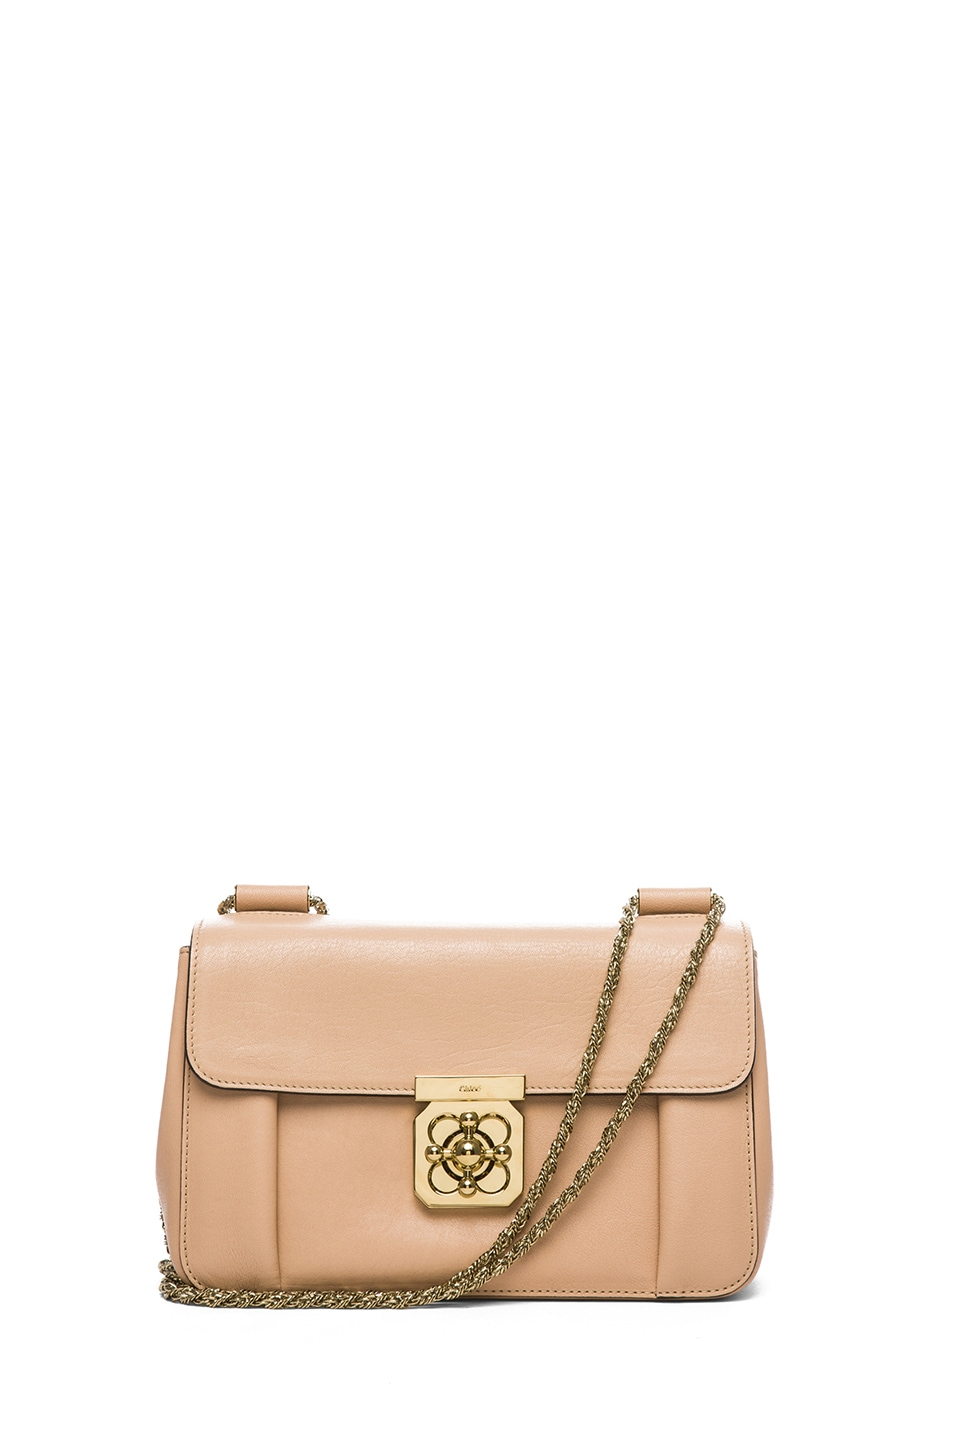 Chloe Medium Elsie Shoulder Bag in Biscotti Beige | FWRD